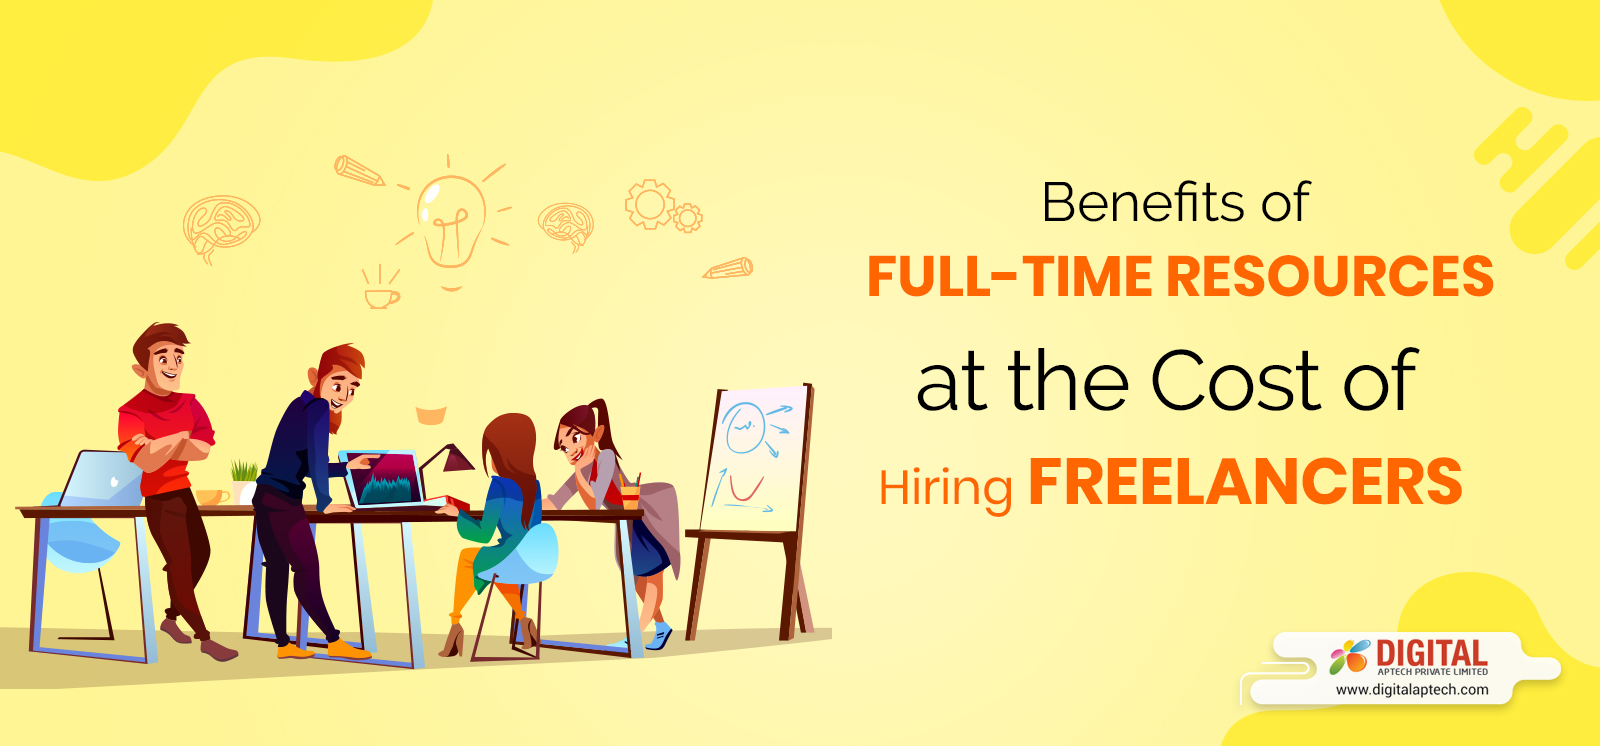 The Benefits of Full-Time Resources at the Cost of Hiring Freelancers